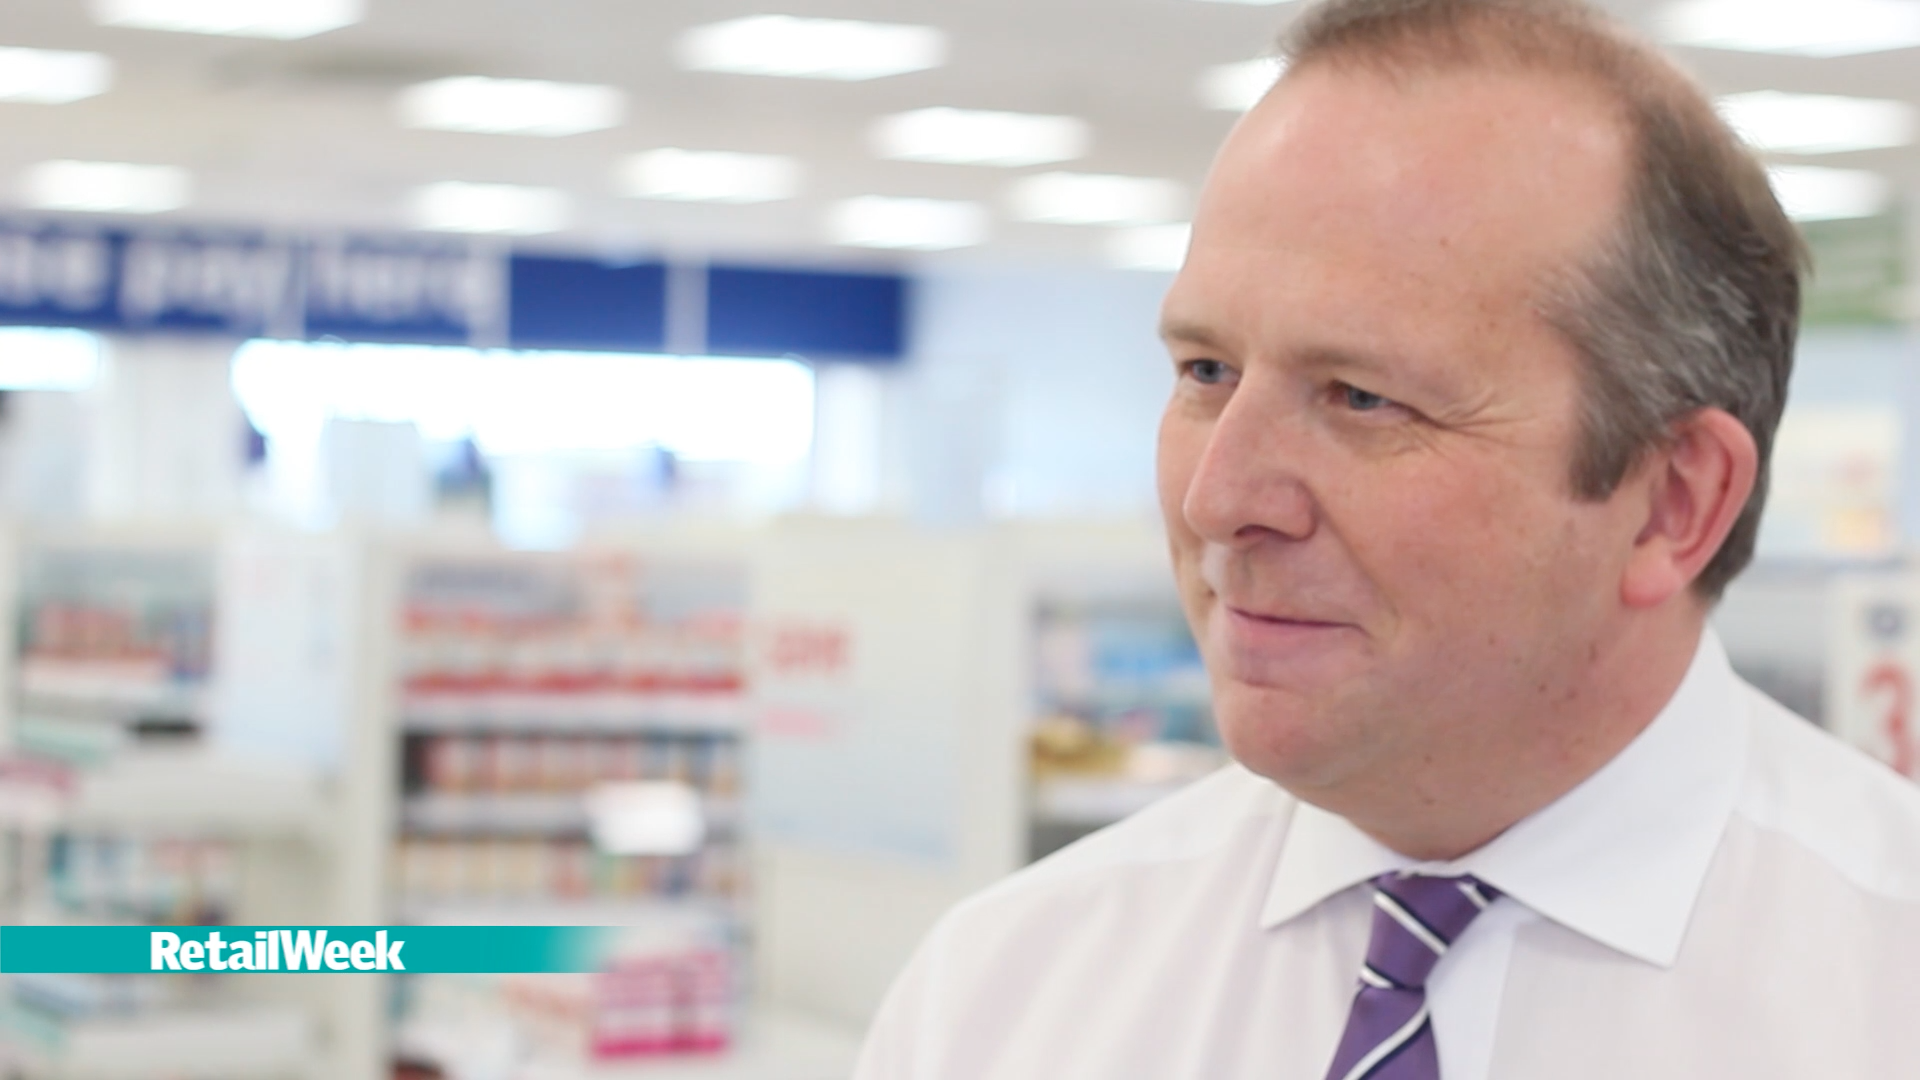 walgreens boots alliance digital transformation goes live in uk boots boss simon roberts to exit amid senior management shake up